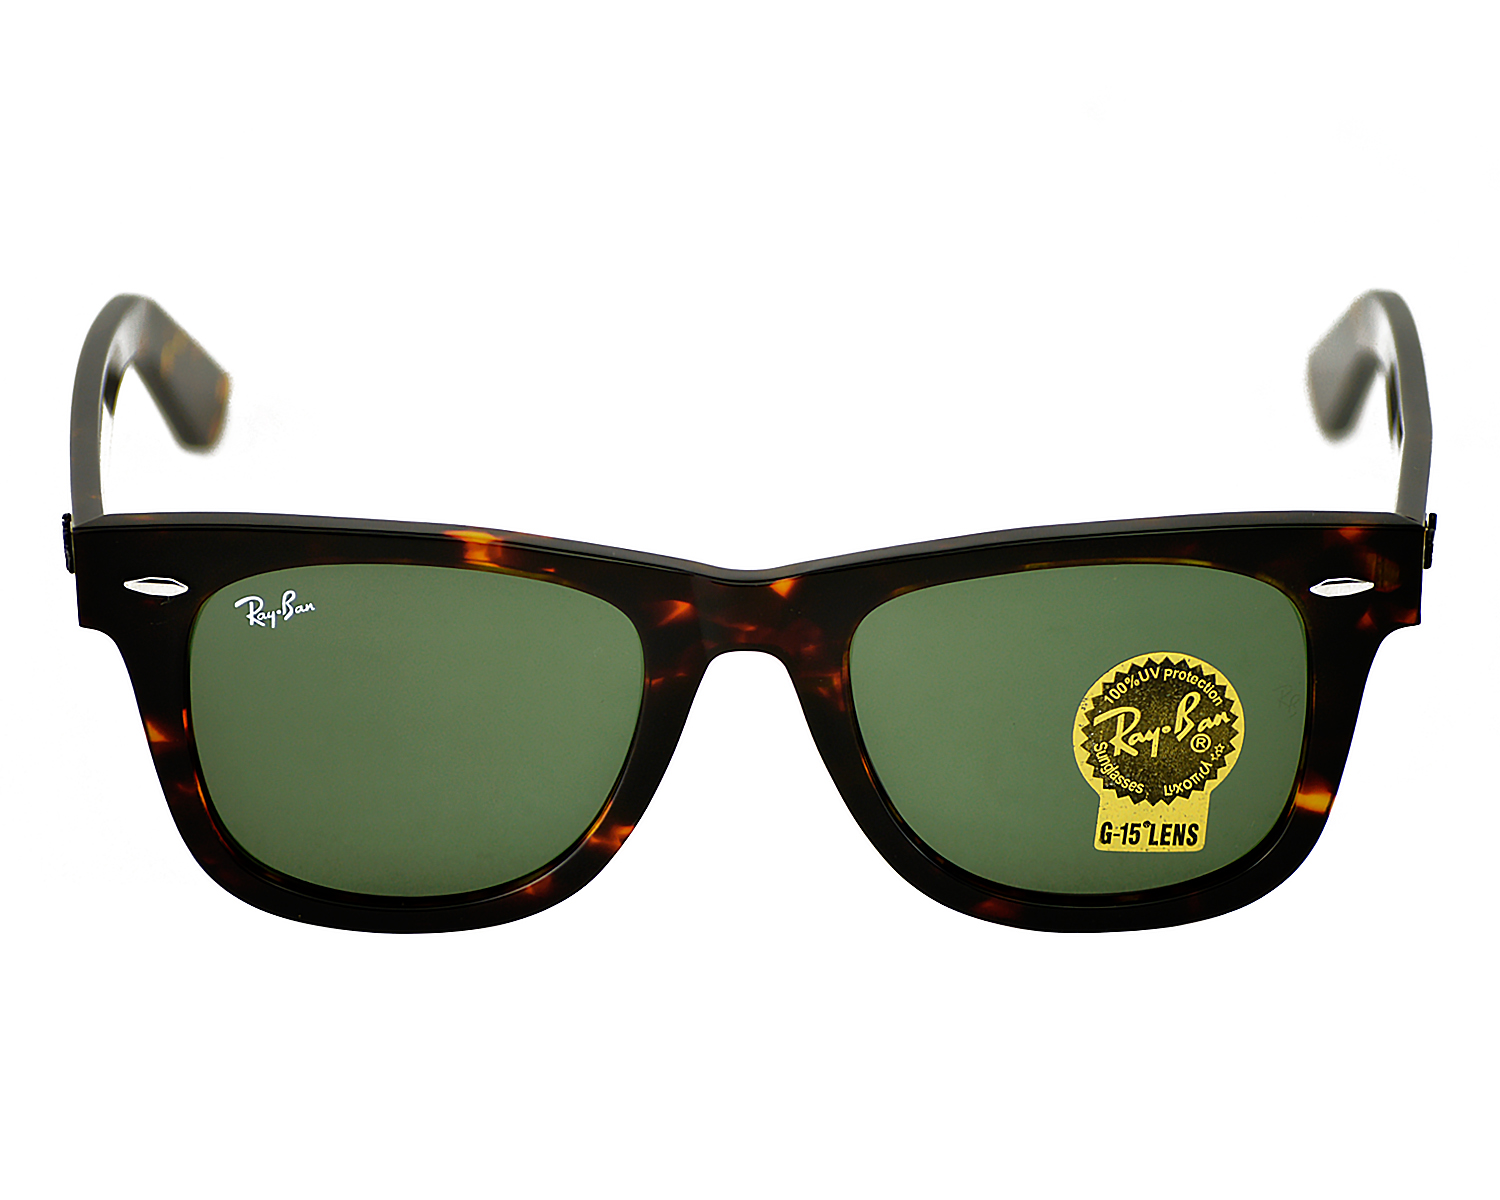 adbccf09df6 ... discount code for ray ban rb 2140 original wayfarer rare prints 902  tortoise green classic g